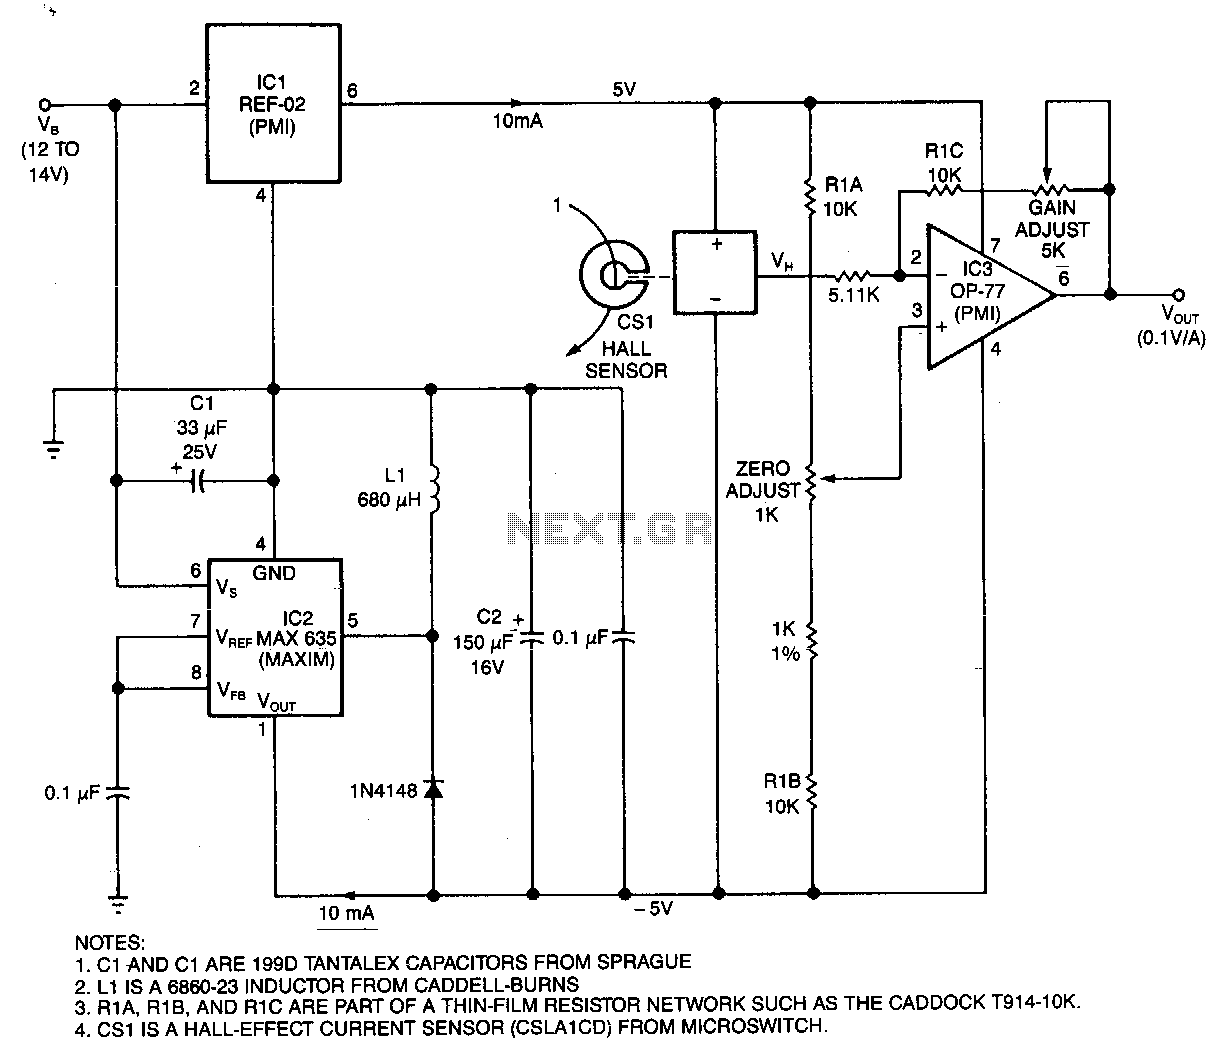 135 9860 hall effect circuit sensors detectors circuits next gr Single Phase Motor Wiring Diagrams at eliteediting.co